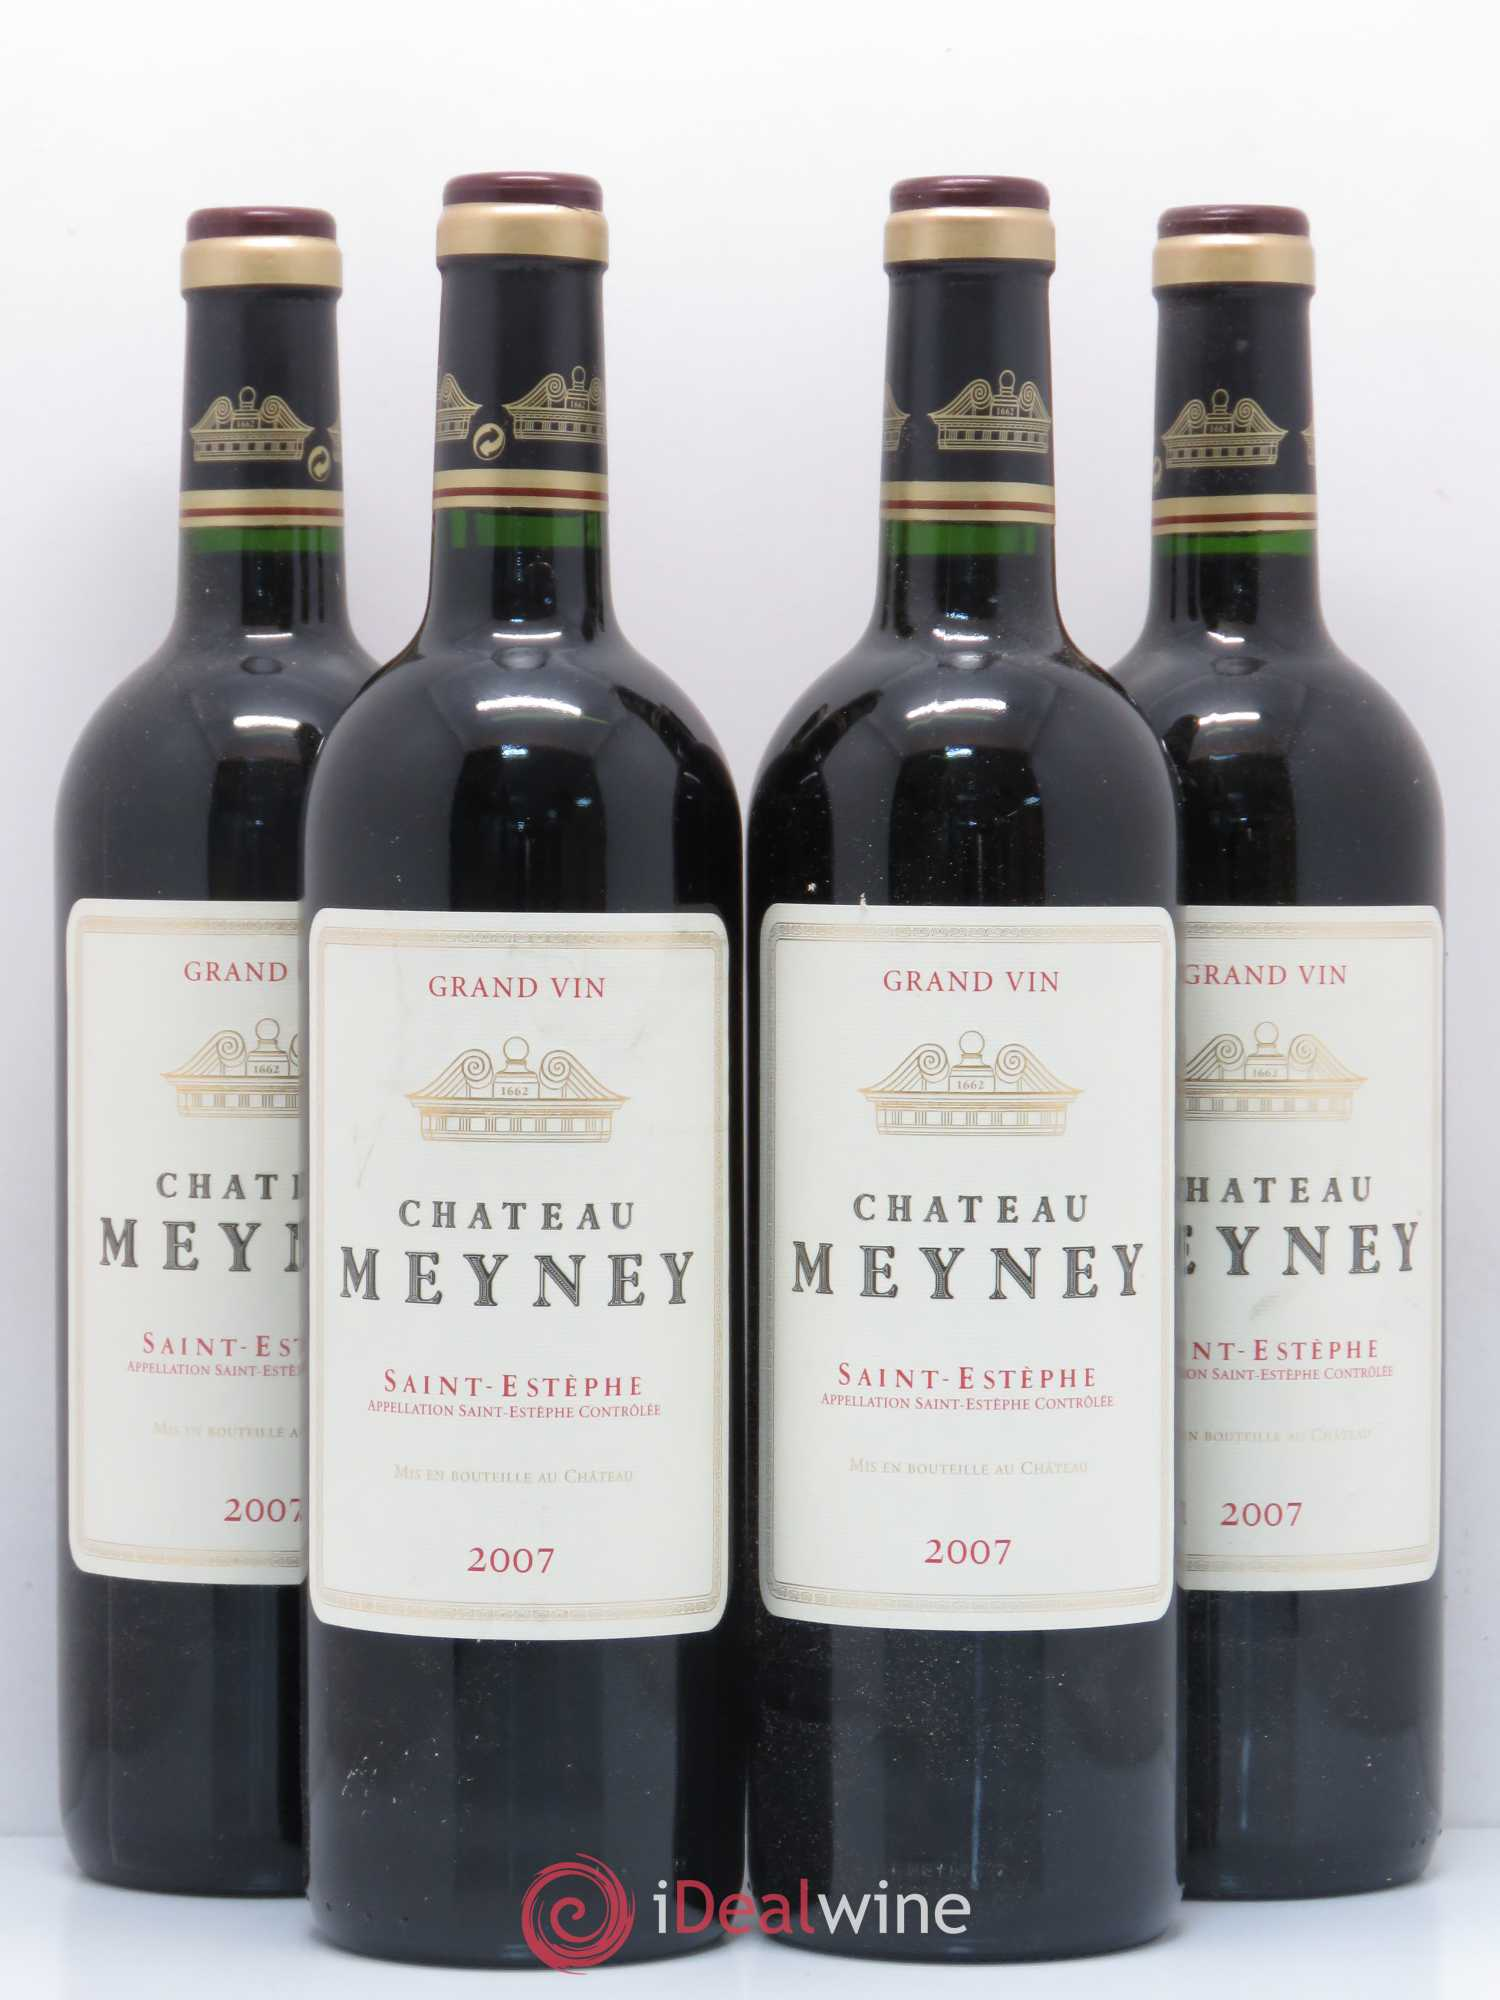 Château Meyney Cru Bourgeois  2007 - Lot of 4 Bottles